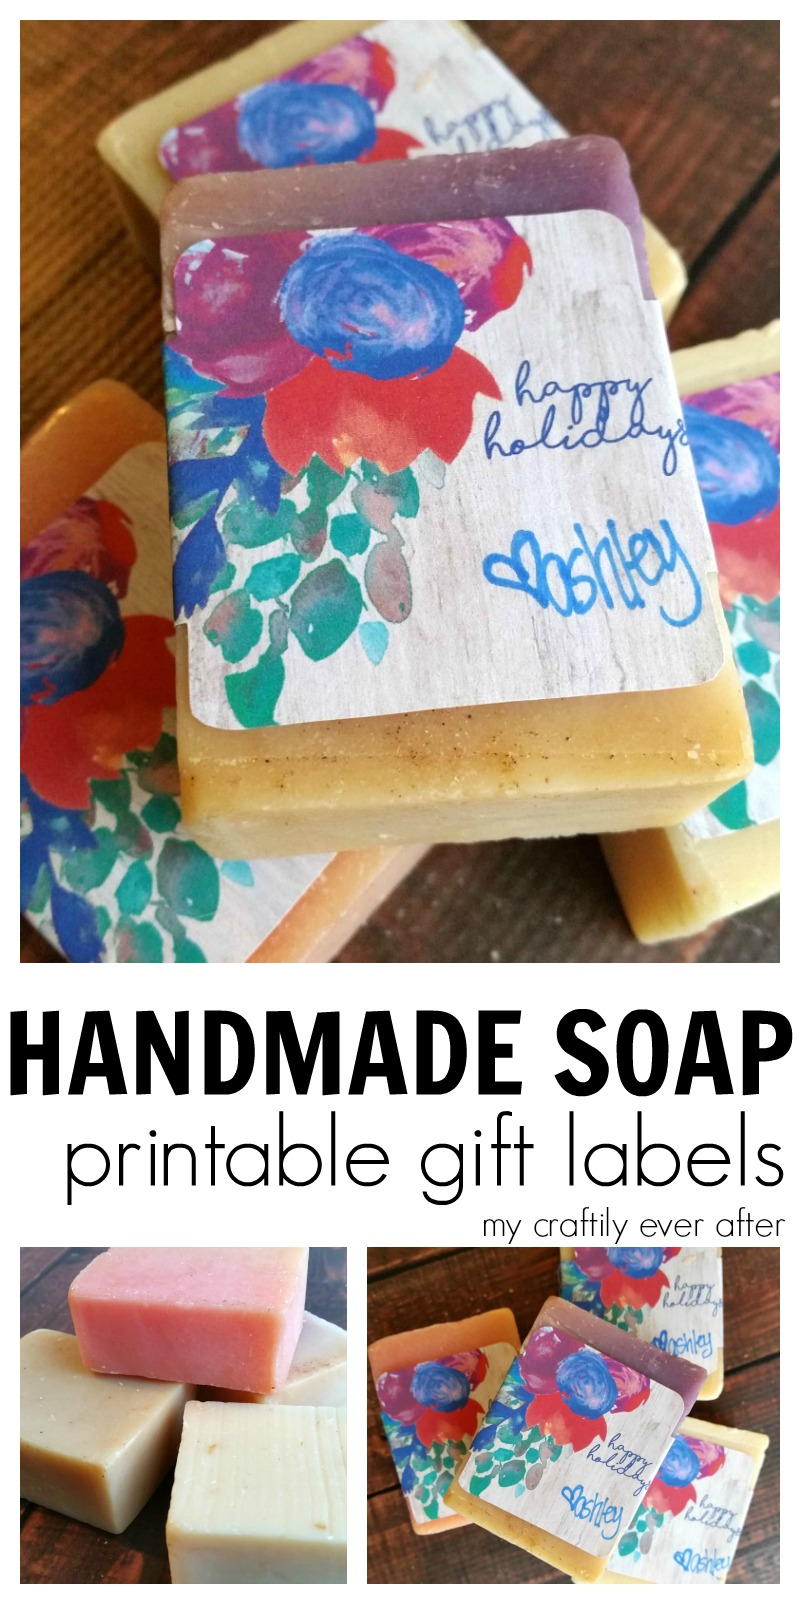 handmade-soaps-printable-gift-labels